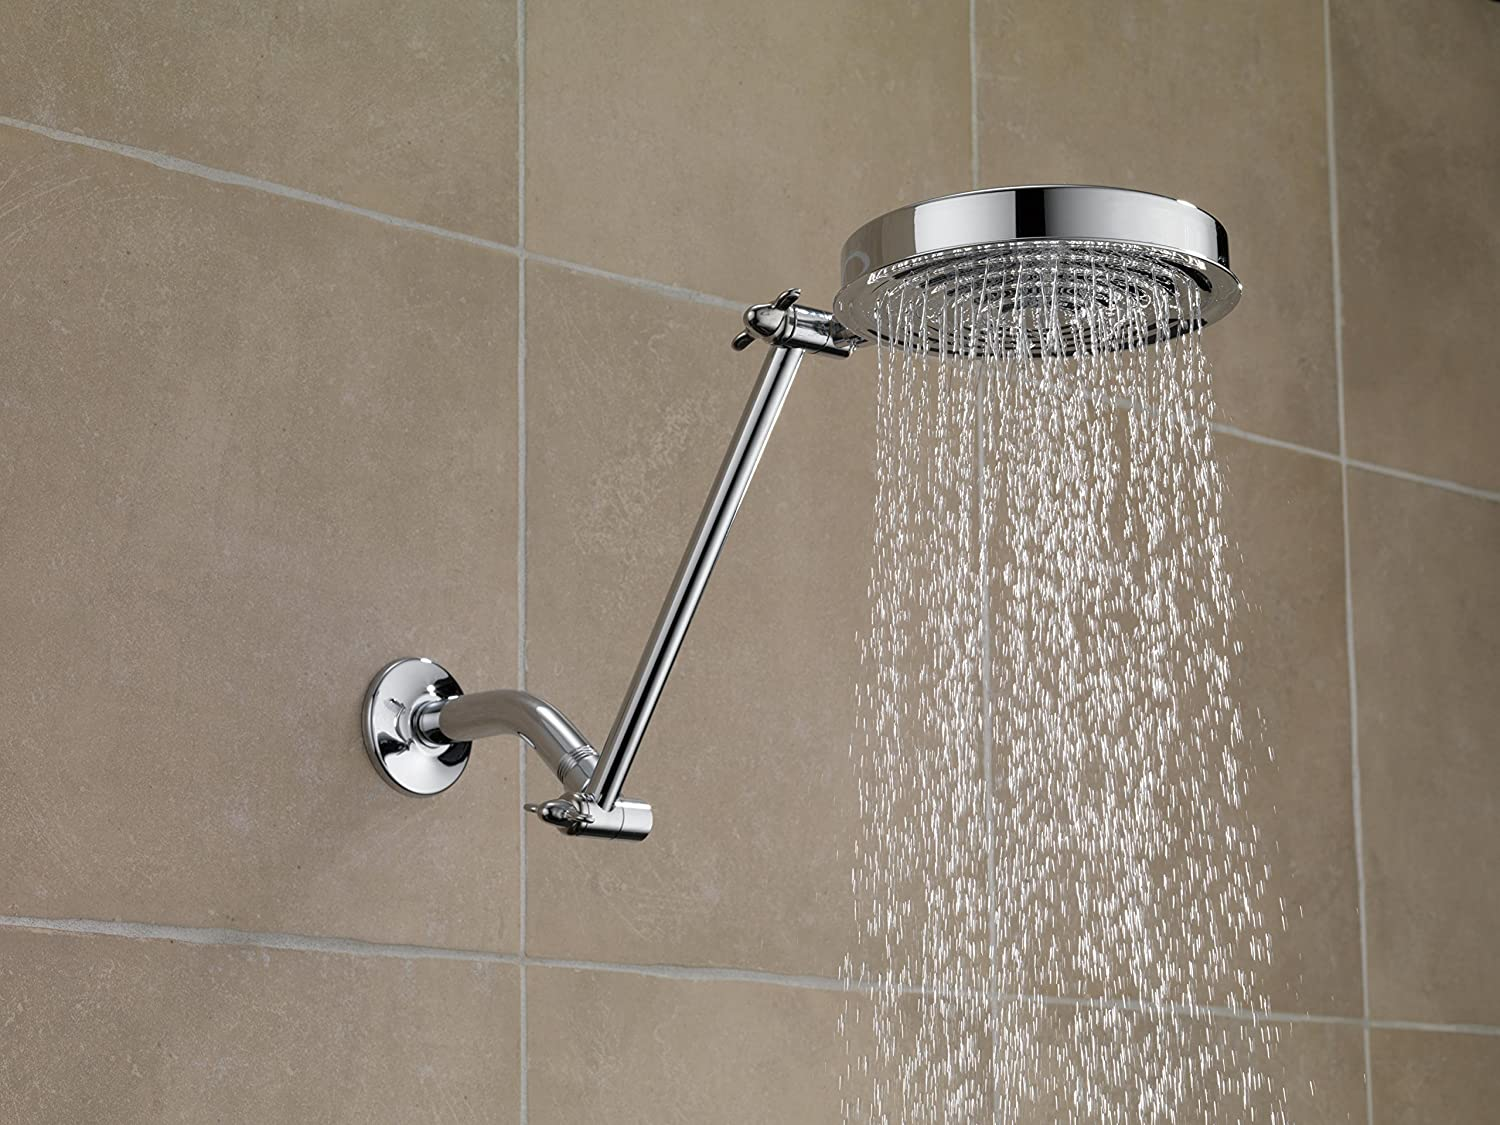 Delta 52687-PK Adjustable Arm Raincan Showerhead, Chrome - Fixed ...